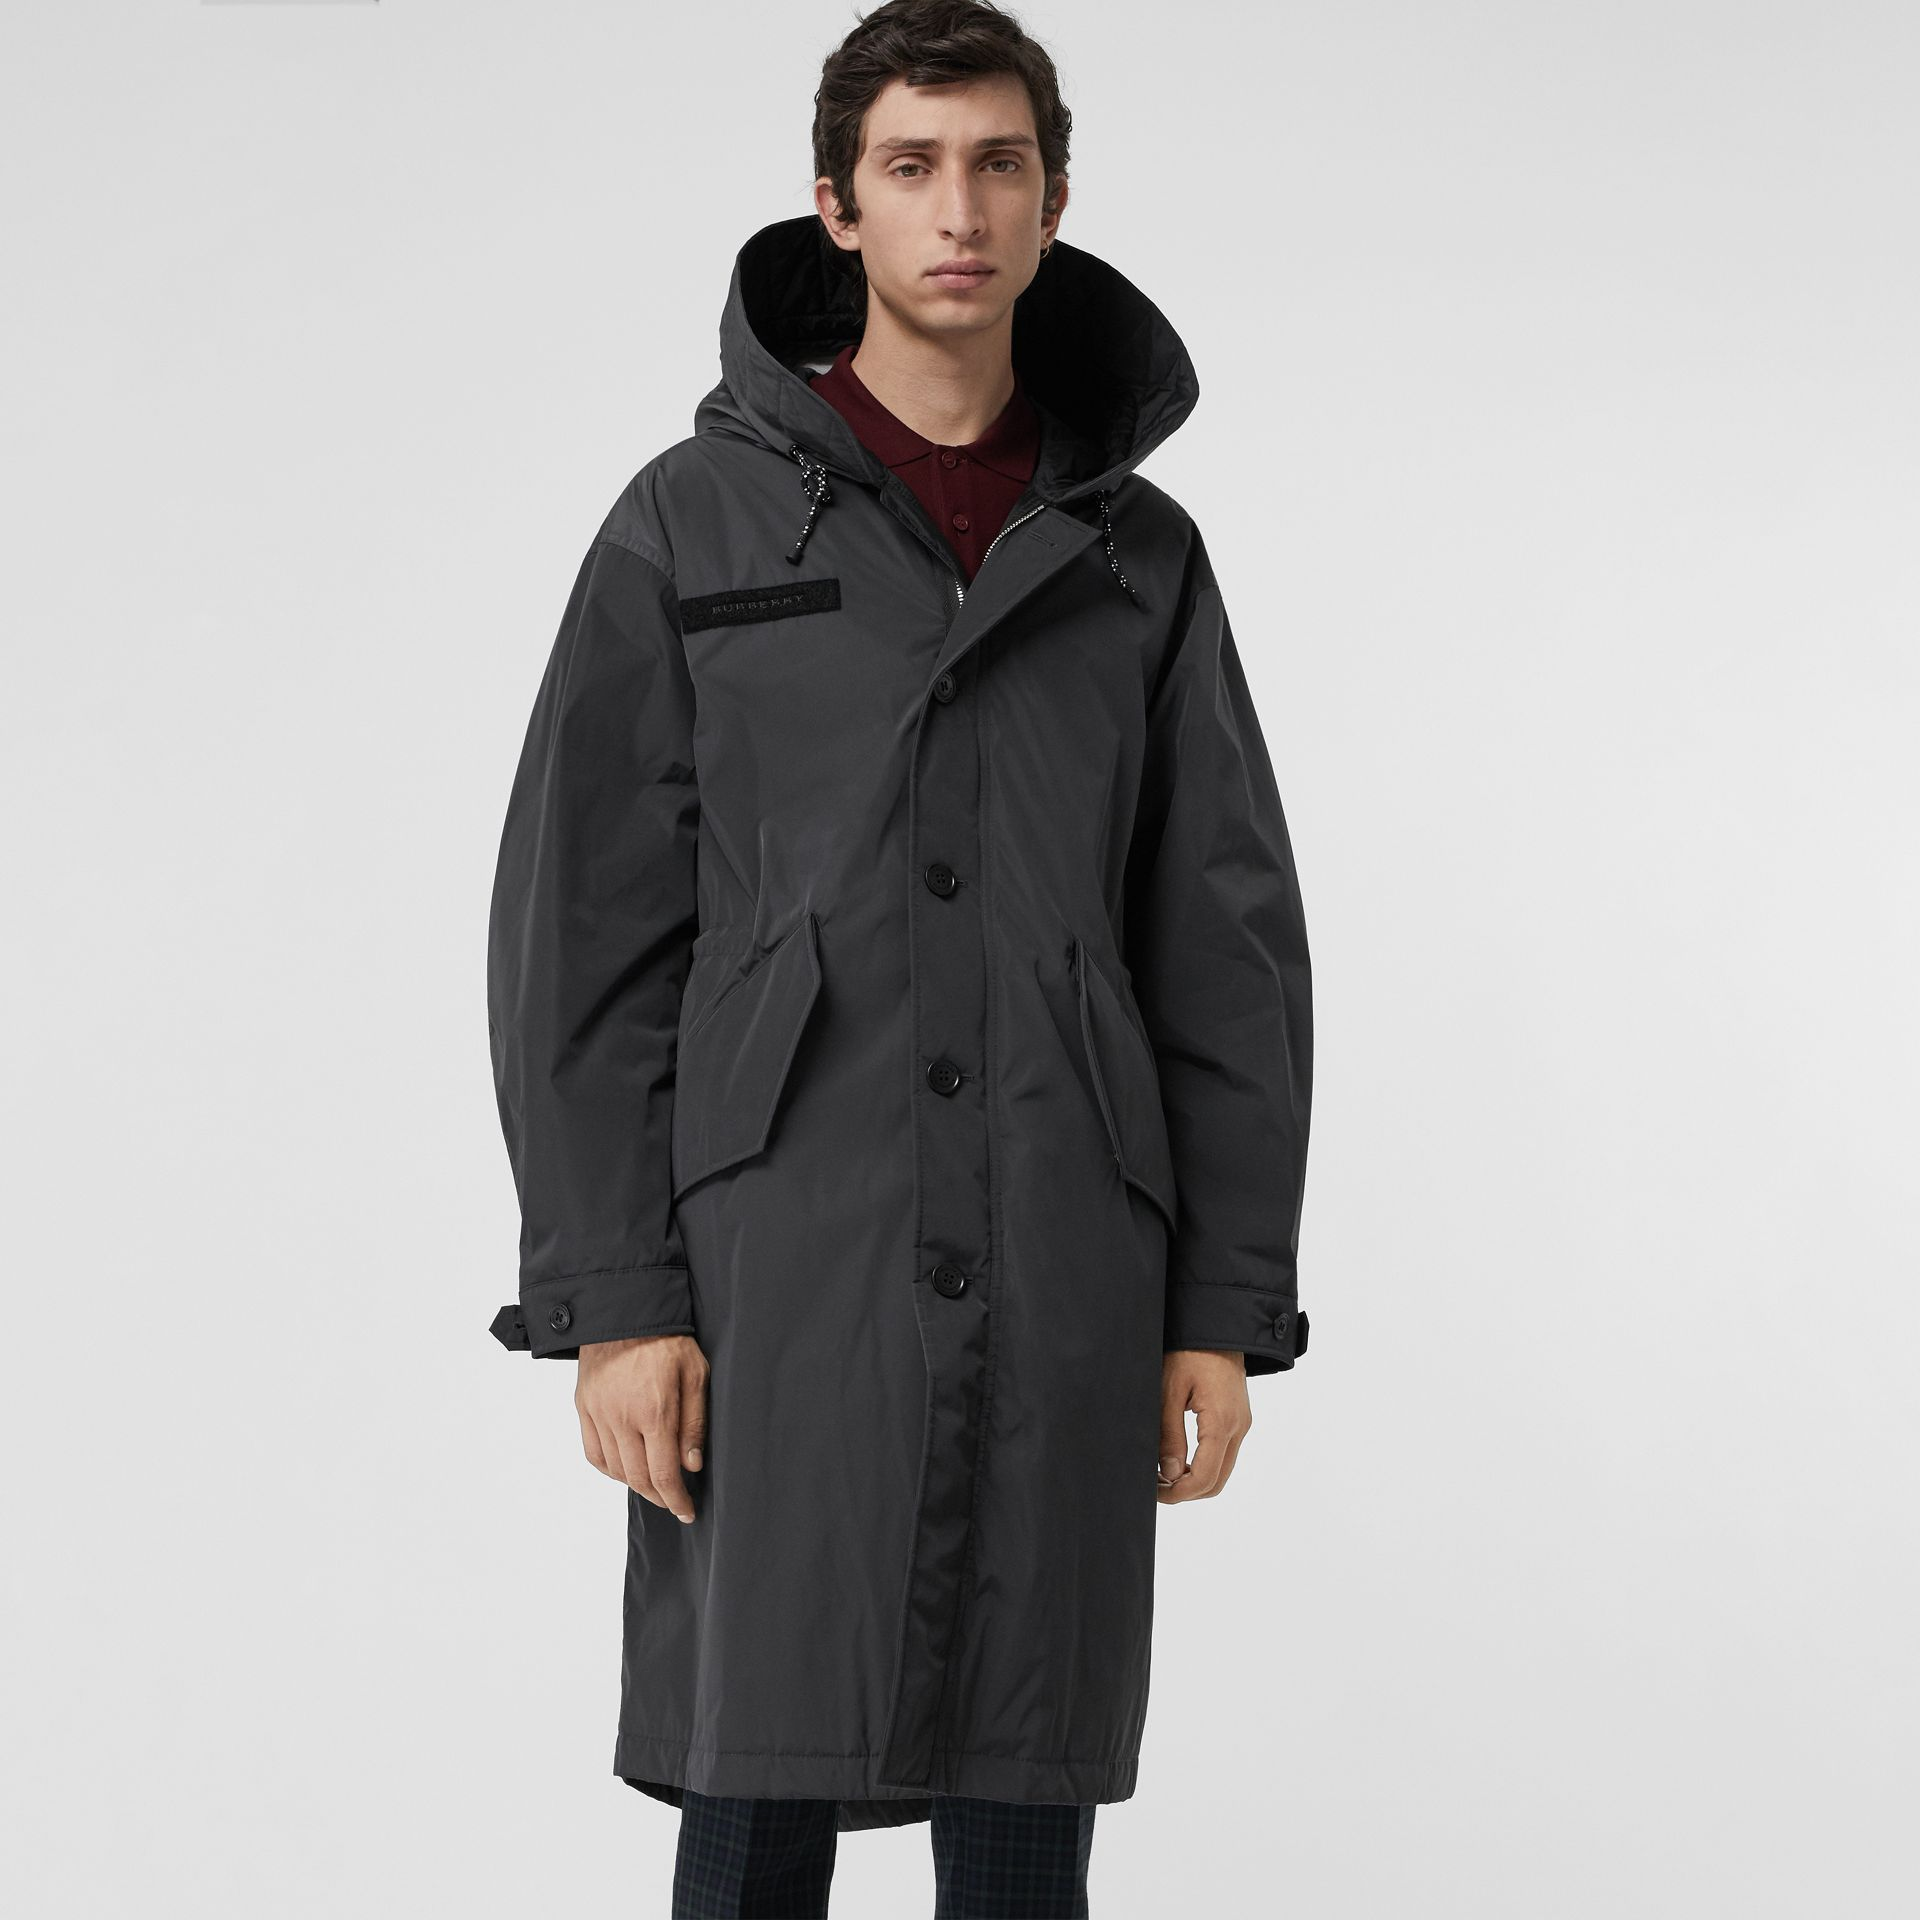 Quilt-lined Technical Nylon Parka in Dark Charcoal - Men | Burberry Australia - gallery image 5